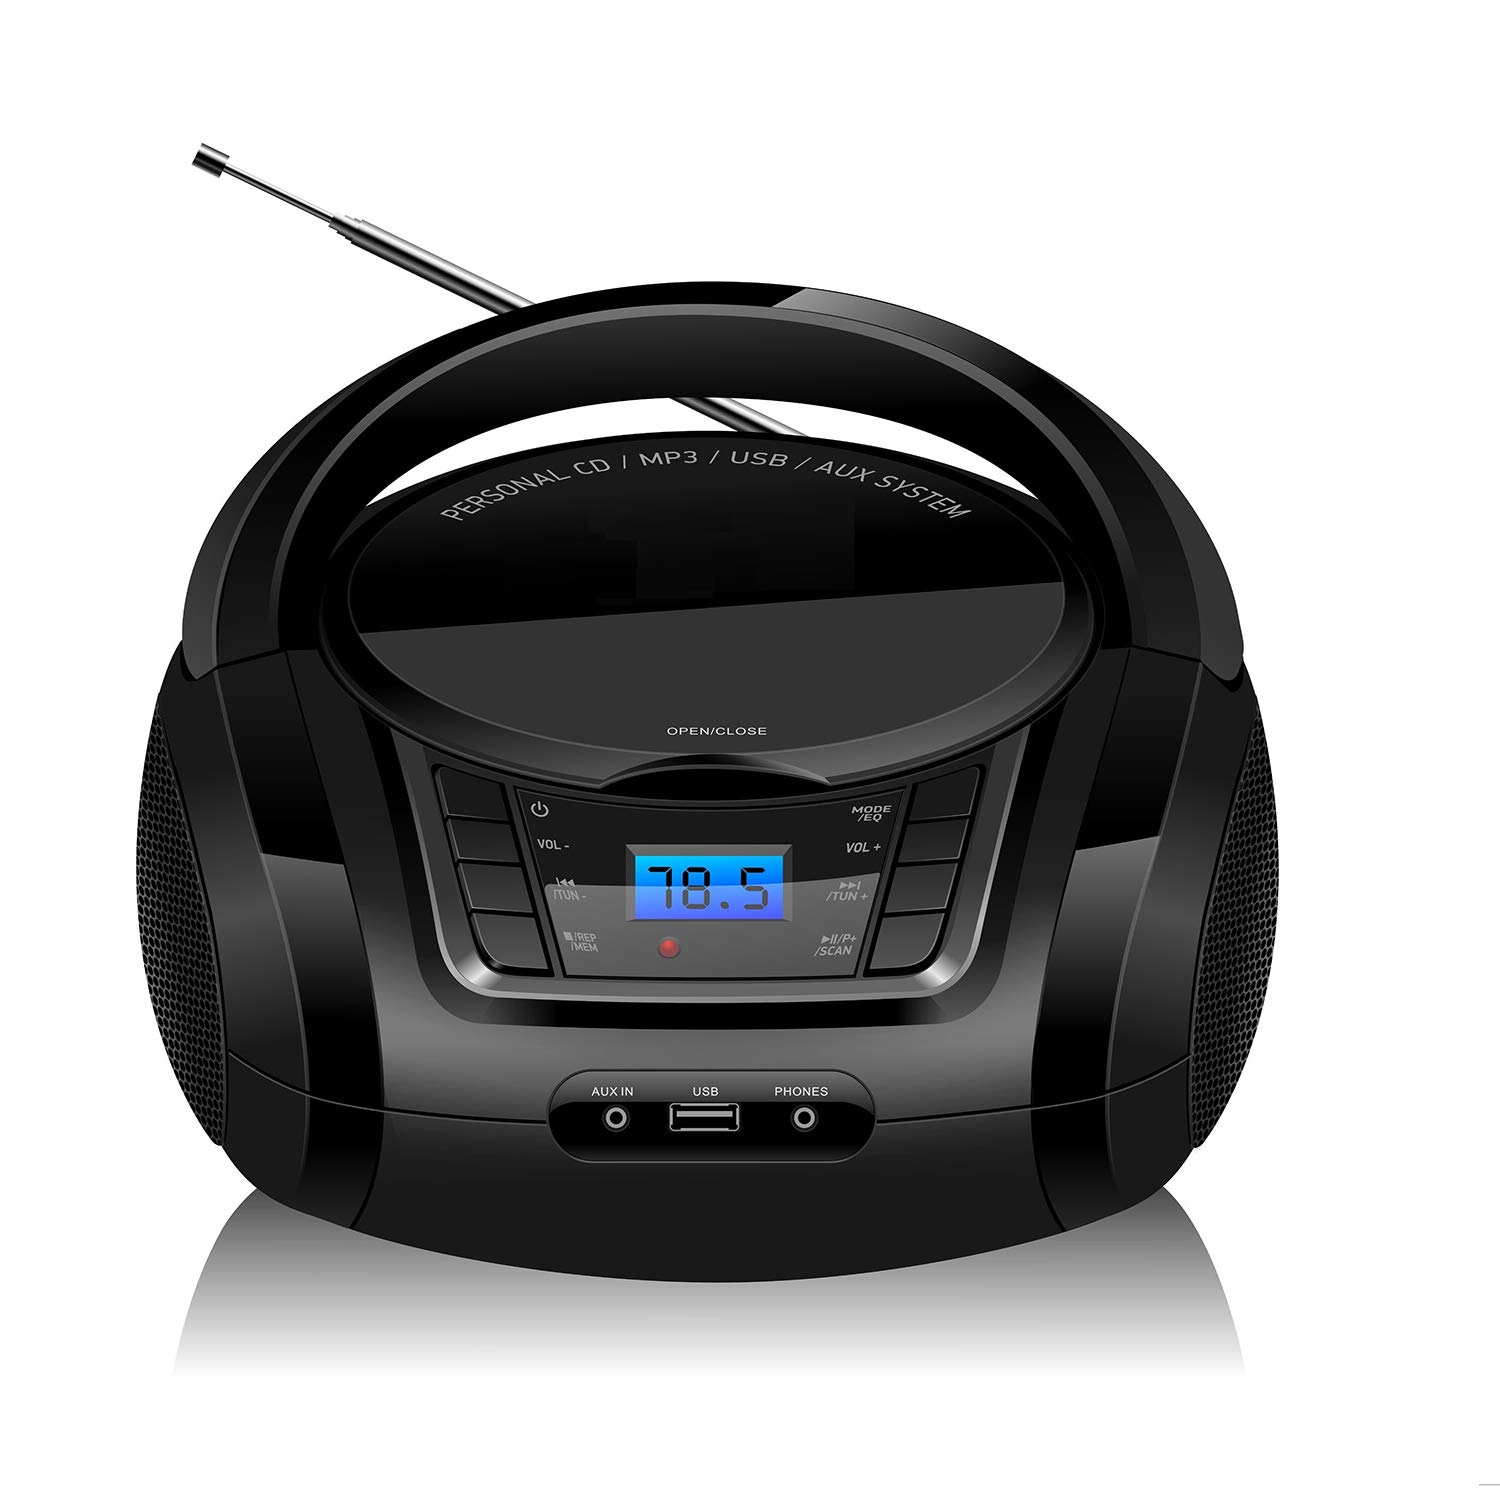 LONPOO CD Player Portable Boombox FM Radio, Bluetooth4.0 MP3/CD Player, with Aux-in, USB&Headphone Jack